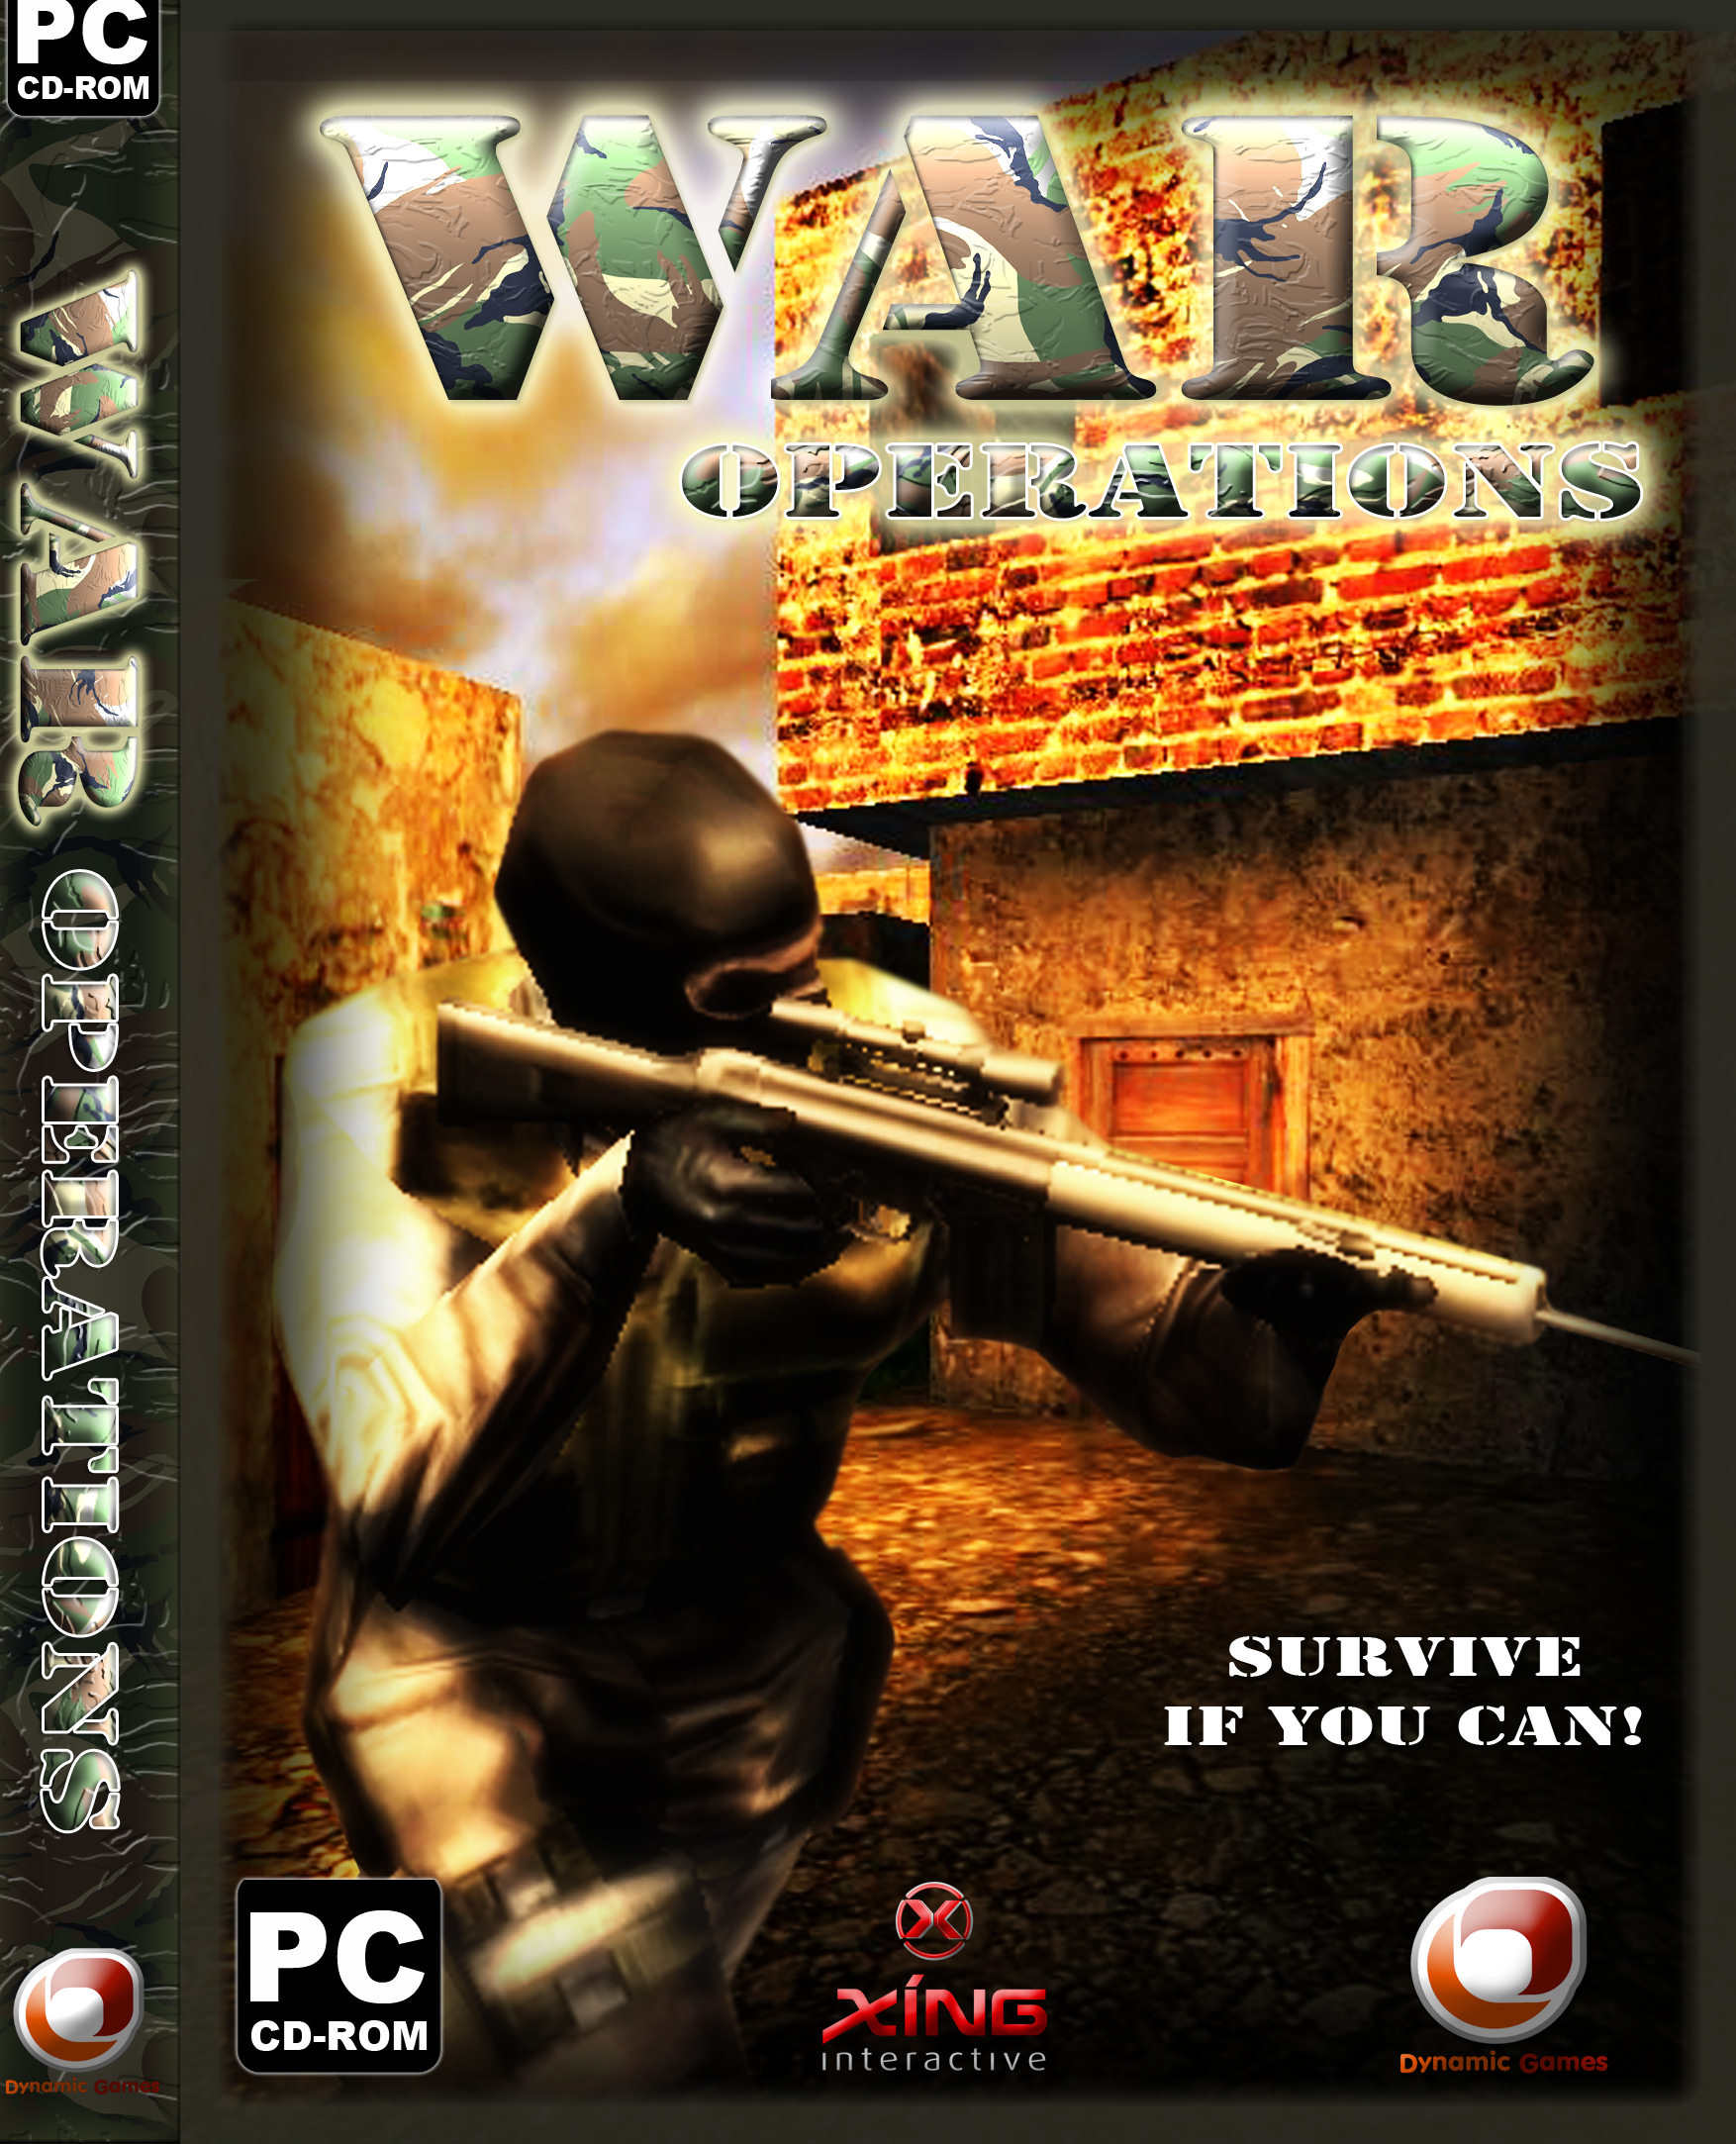 xing-interactive-b-v-war-operations-logo.jpg